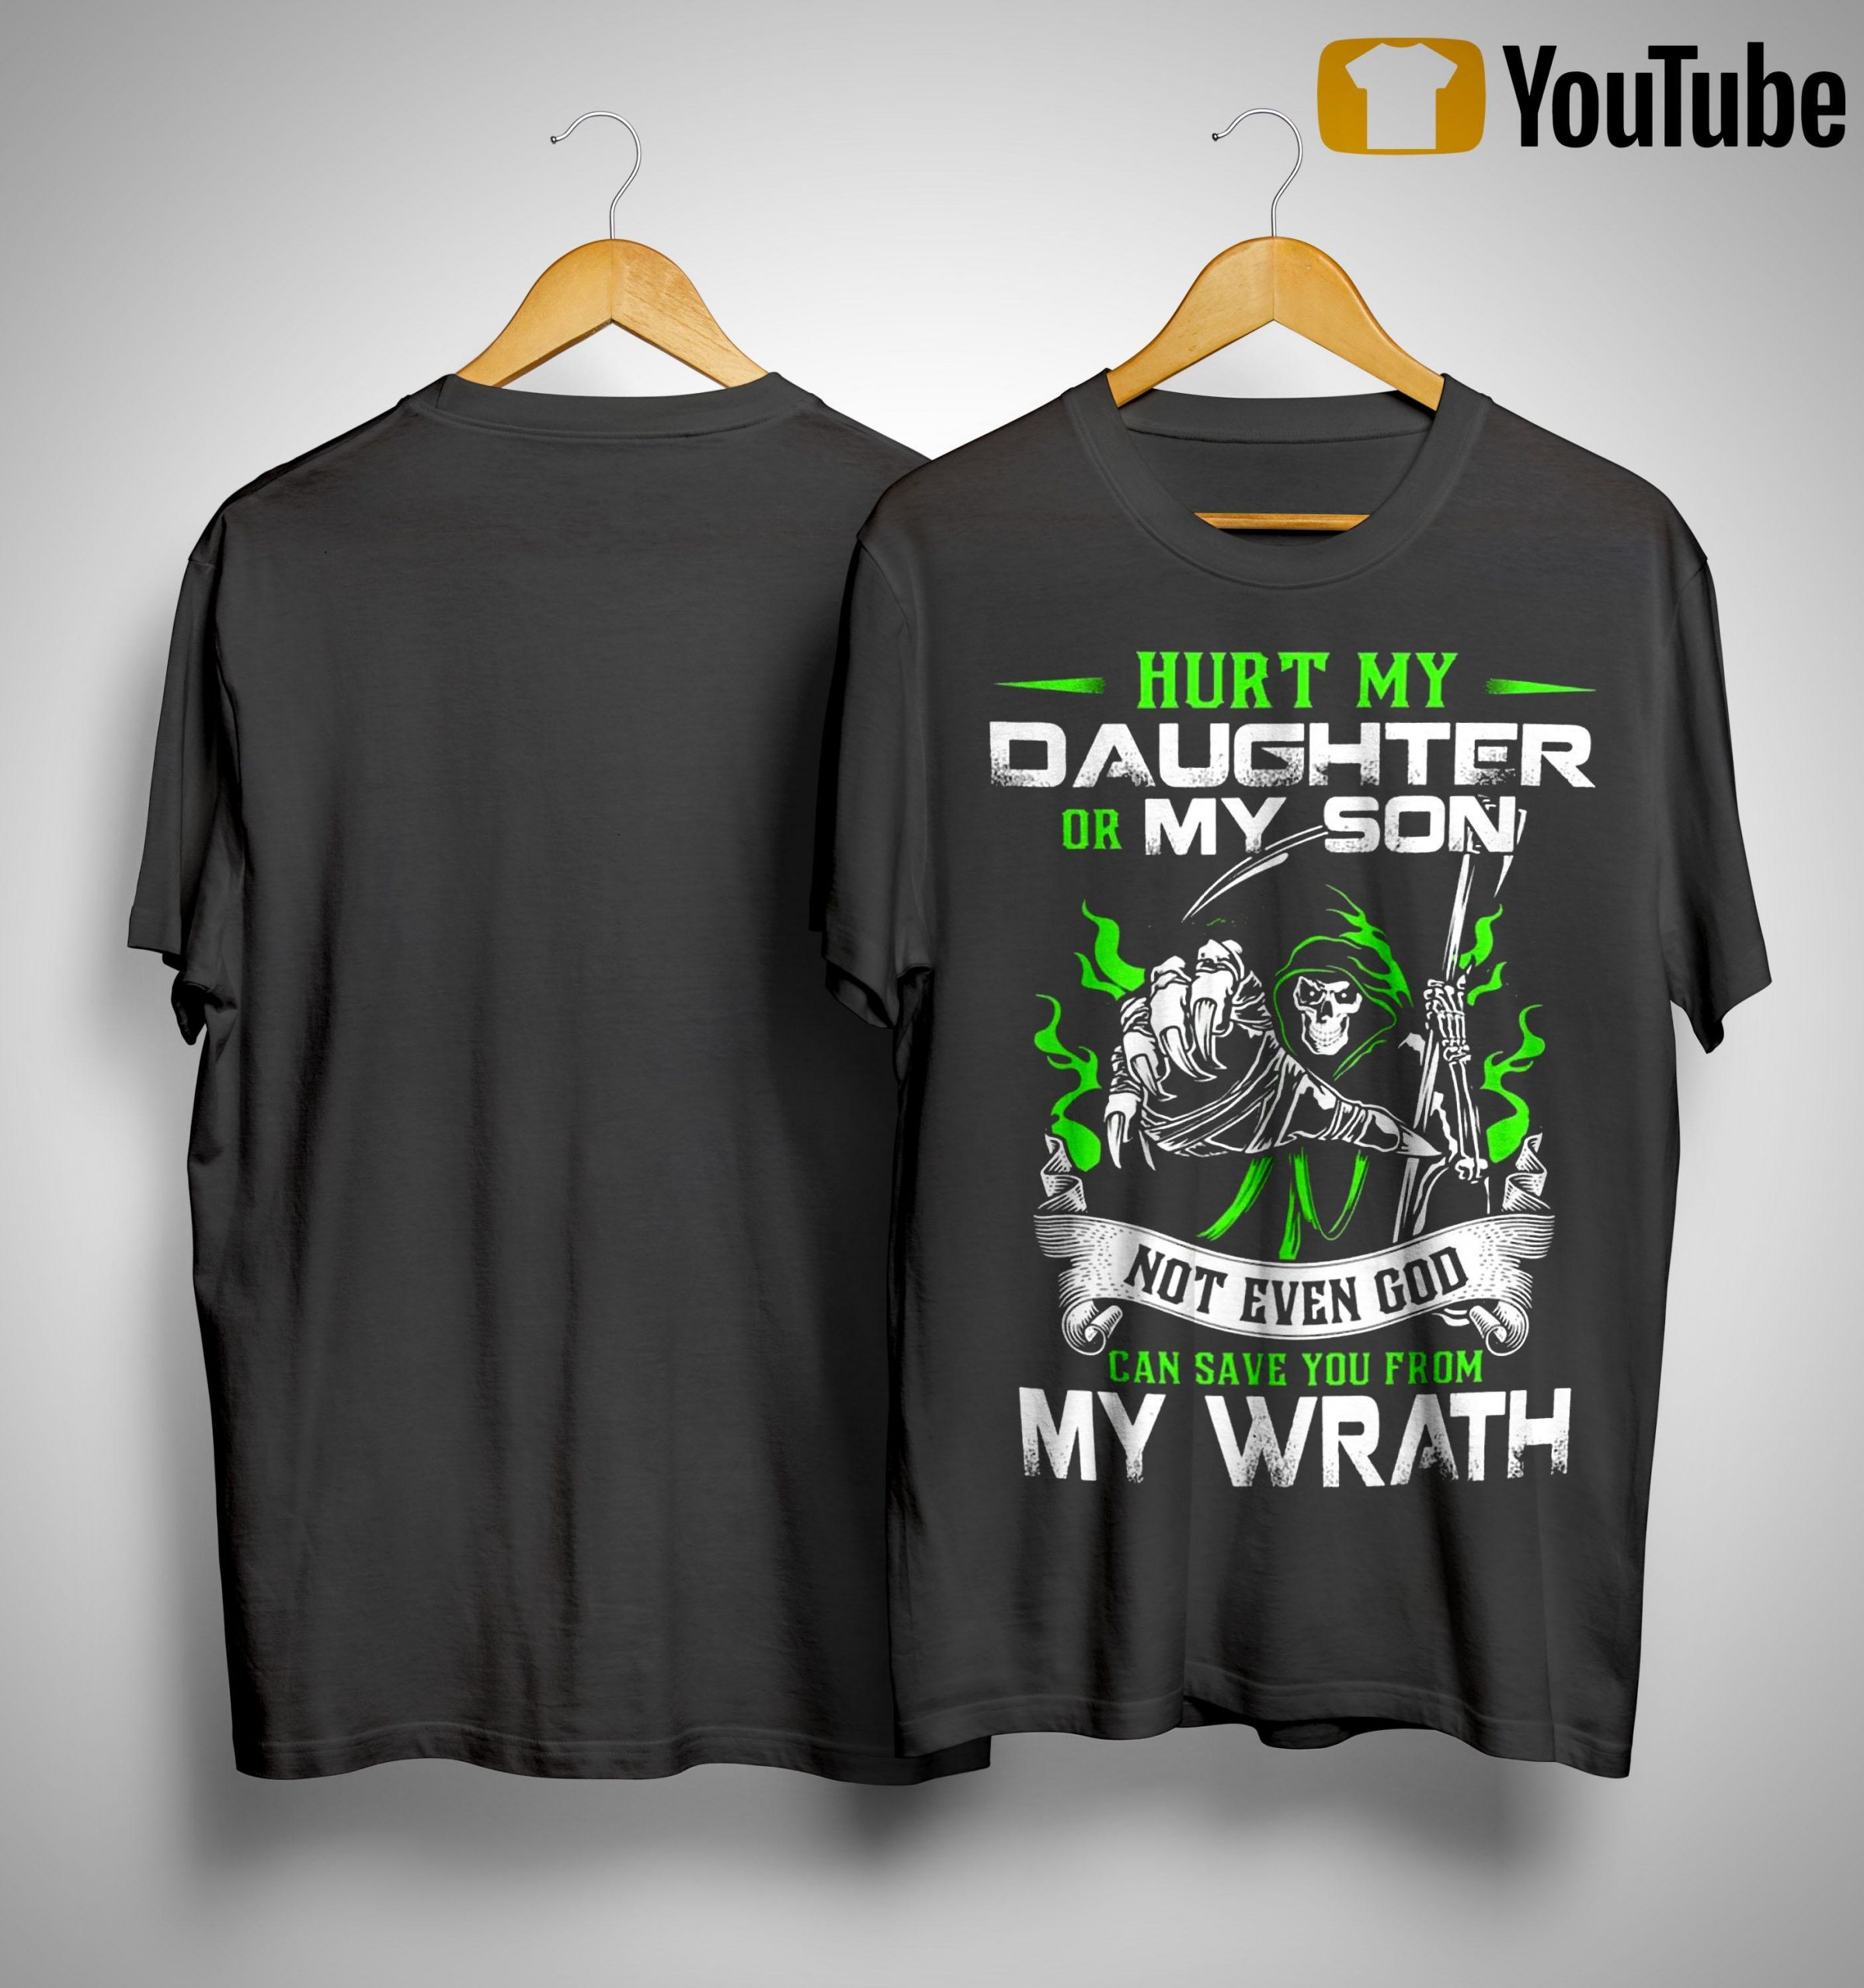 Death Hurt My Daughter Or My Son Not Even God Can Save You From My Wrath Shirt